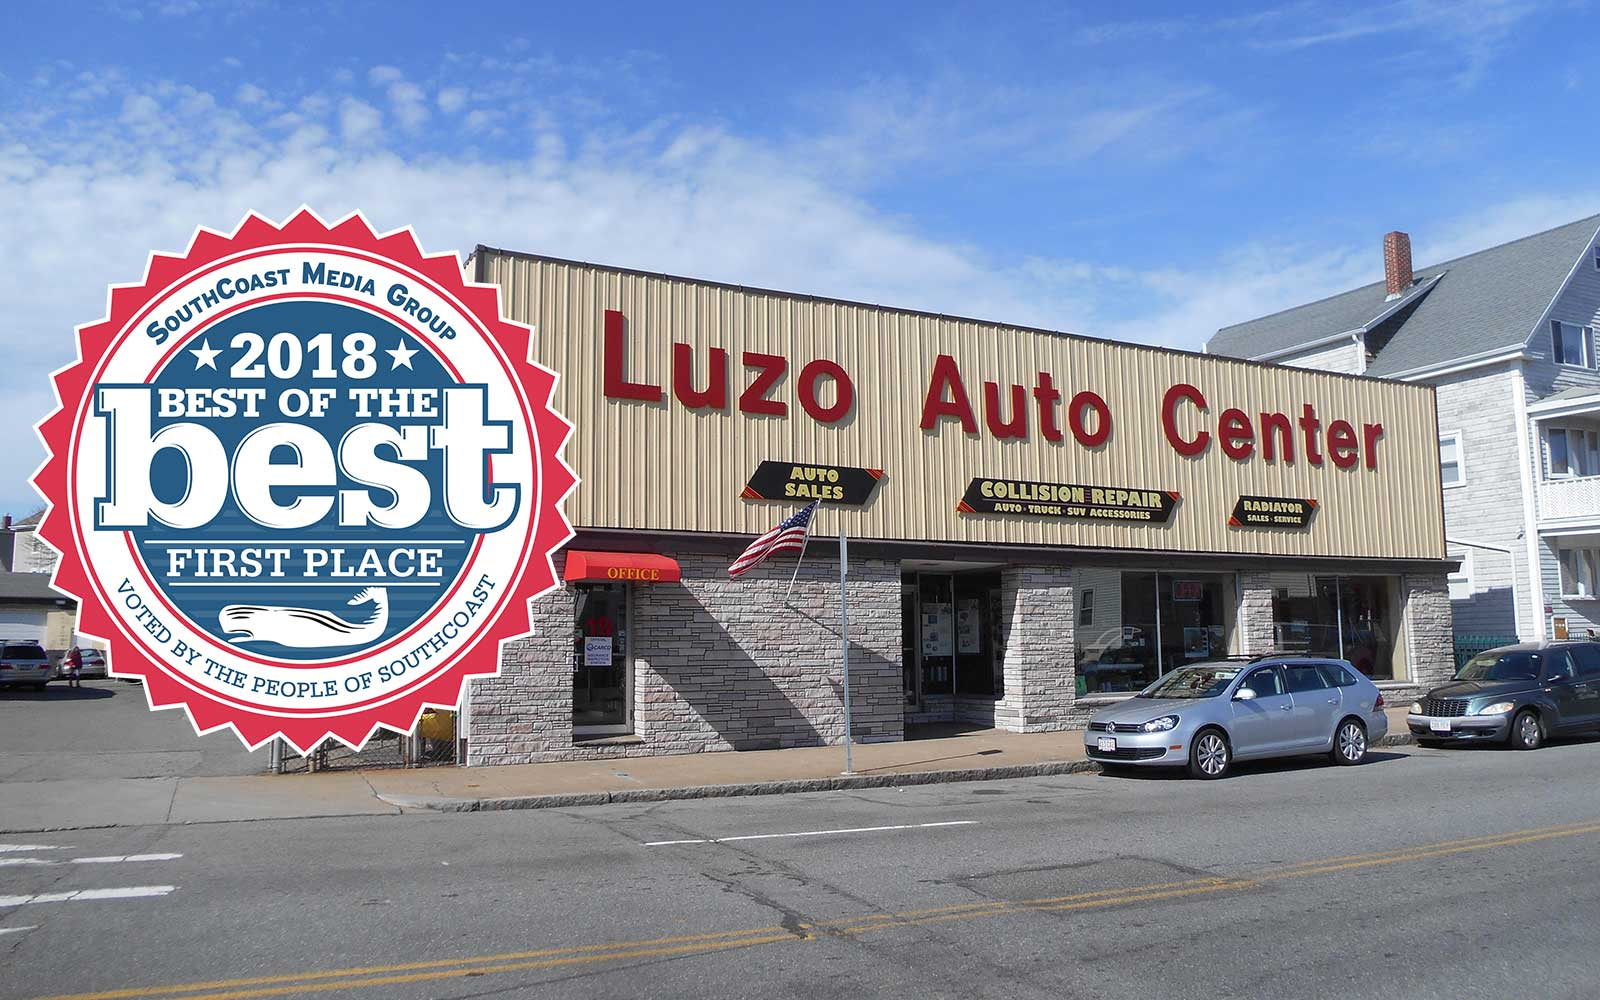 luzoautocenter-best2018